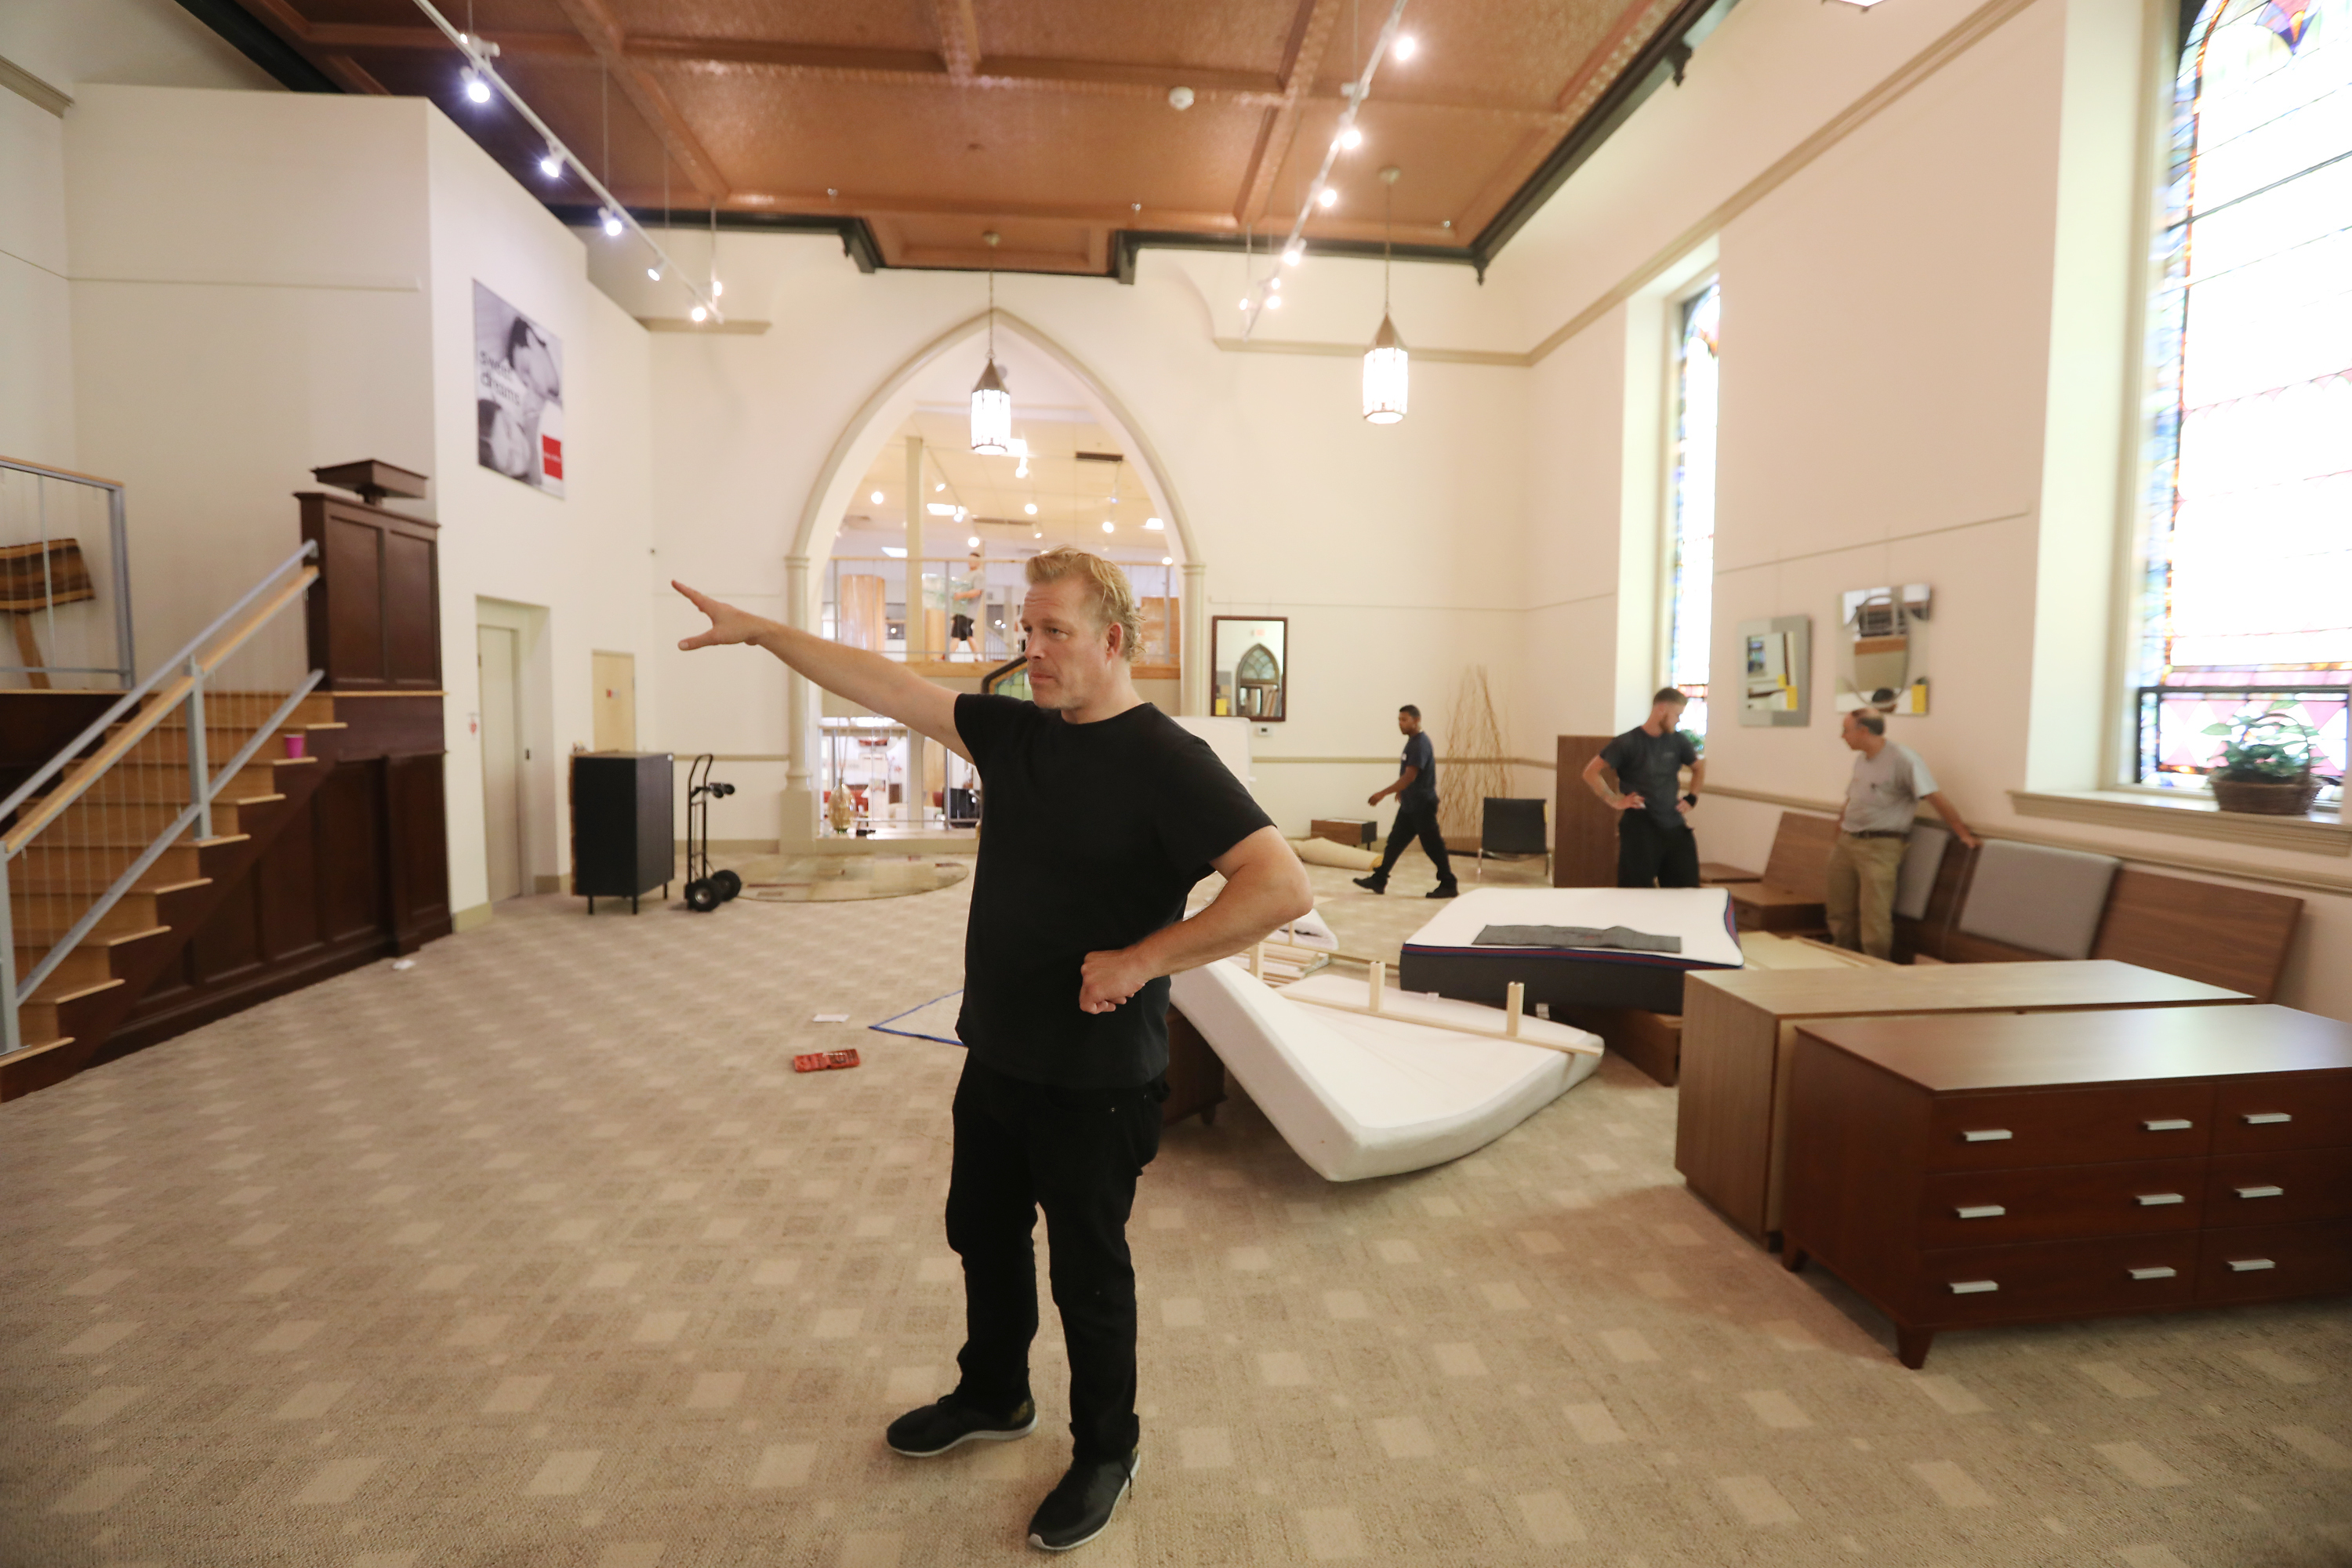 Dane Decor co-owner Drew Hamilton was orchestrating crews as they emptied portions of his Downingtown, Pa., store of furniture on Friday, Aug. 3, 2018. This part of the store, occupying the sanctuary of an 18th-century church, will be the dance floor for a wedding reception for the young mayor of his town. x